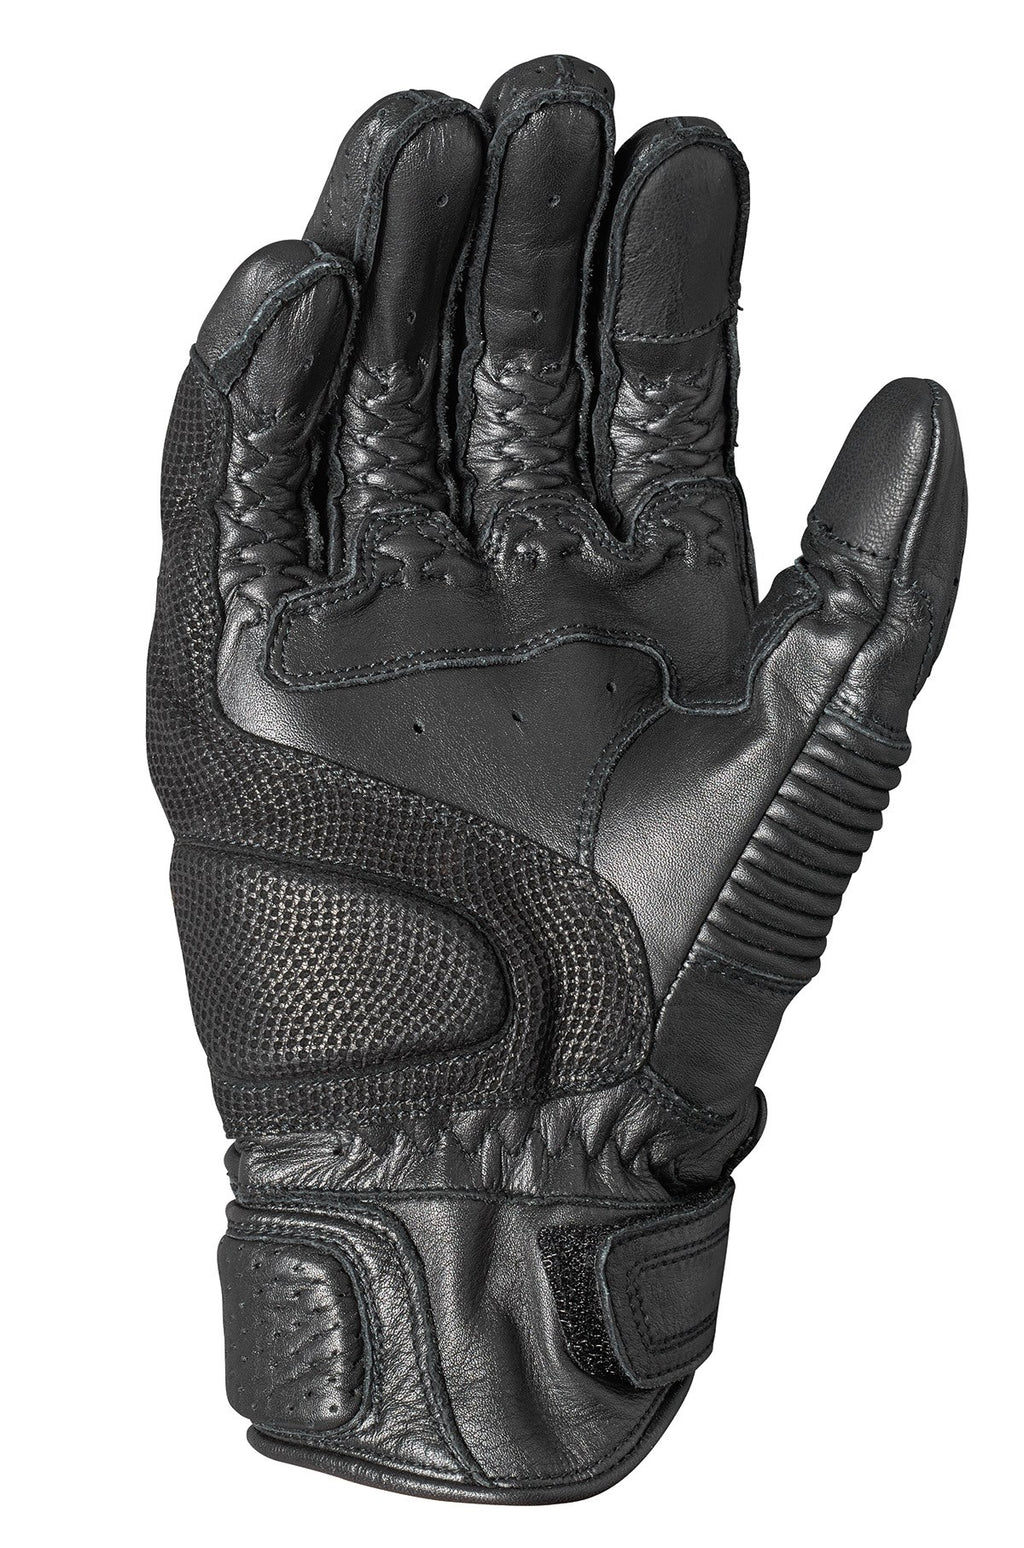 RSD (Roland Sands Design) Berlin Gloves - Black